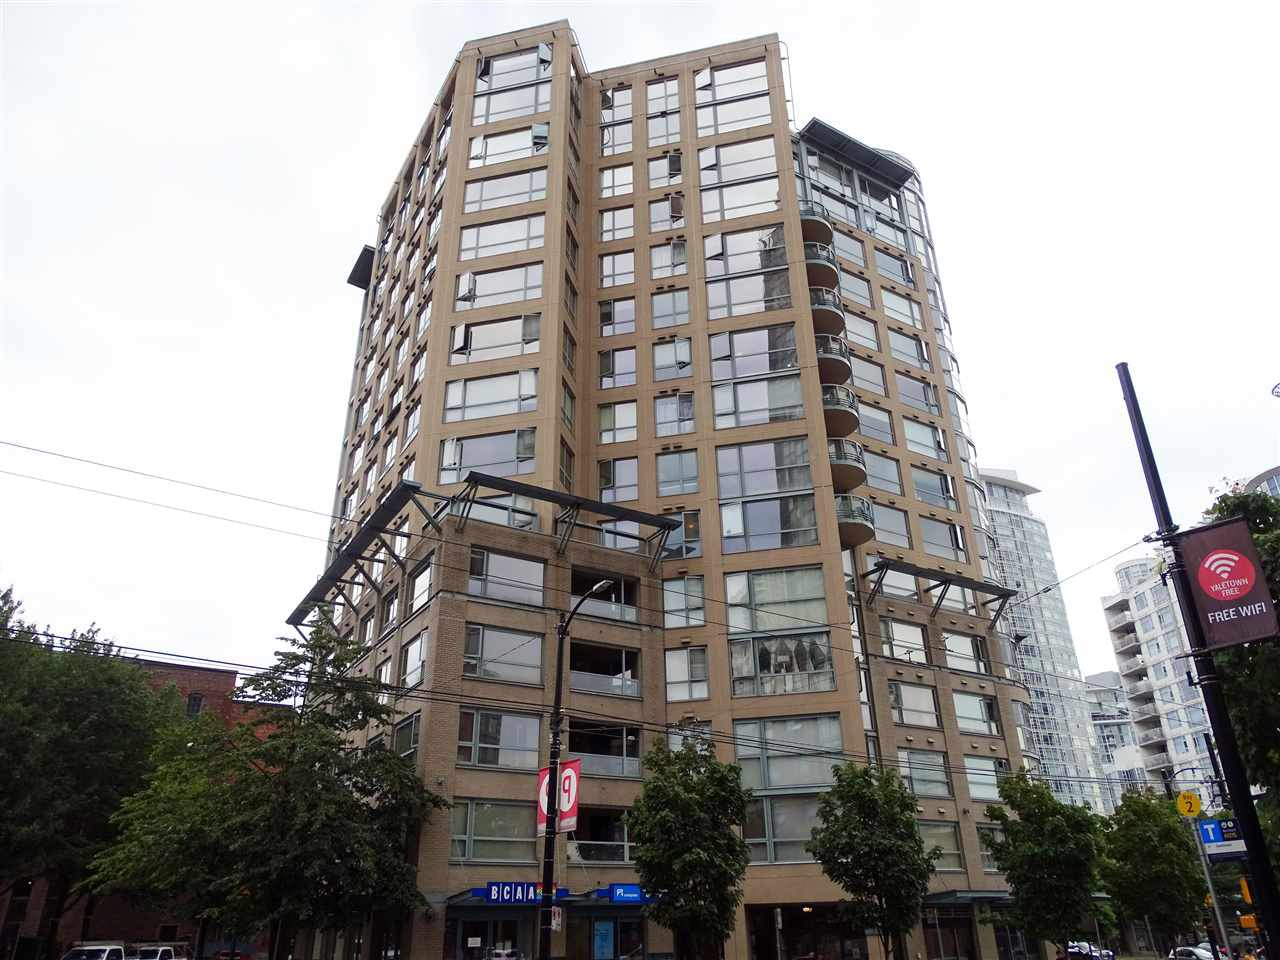 Main Photo: 1406 283 DAVIE Street in Vancouver: Yaletown Condo for sale (Vancouver West)  : MLS®# R2492666